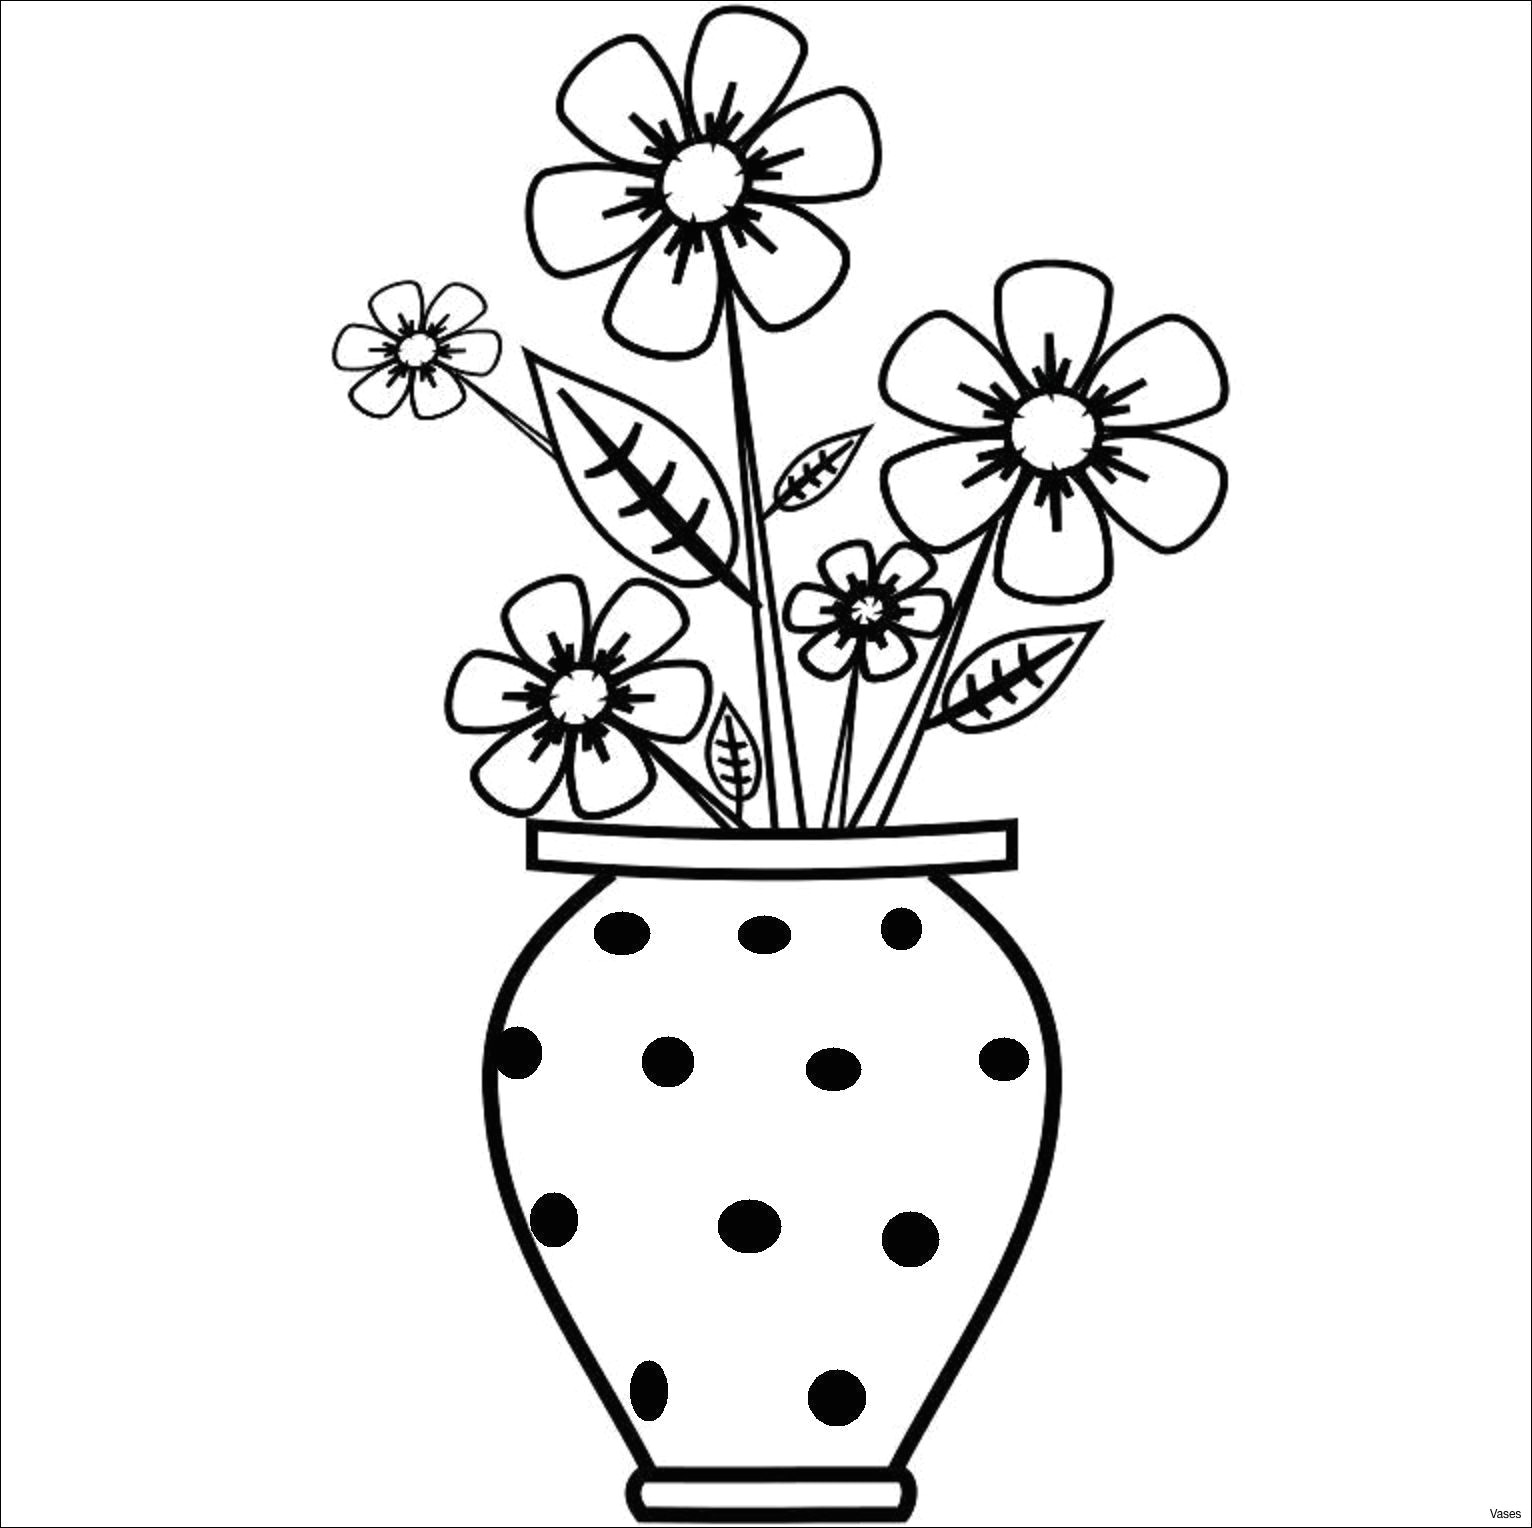 pics of drawings easy vase art drawings how to draw a vase step 2h vases by